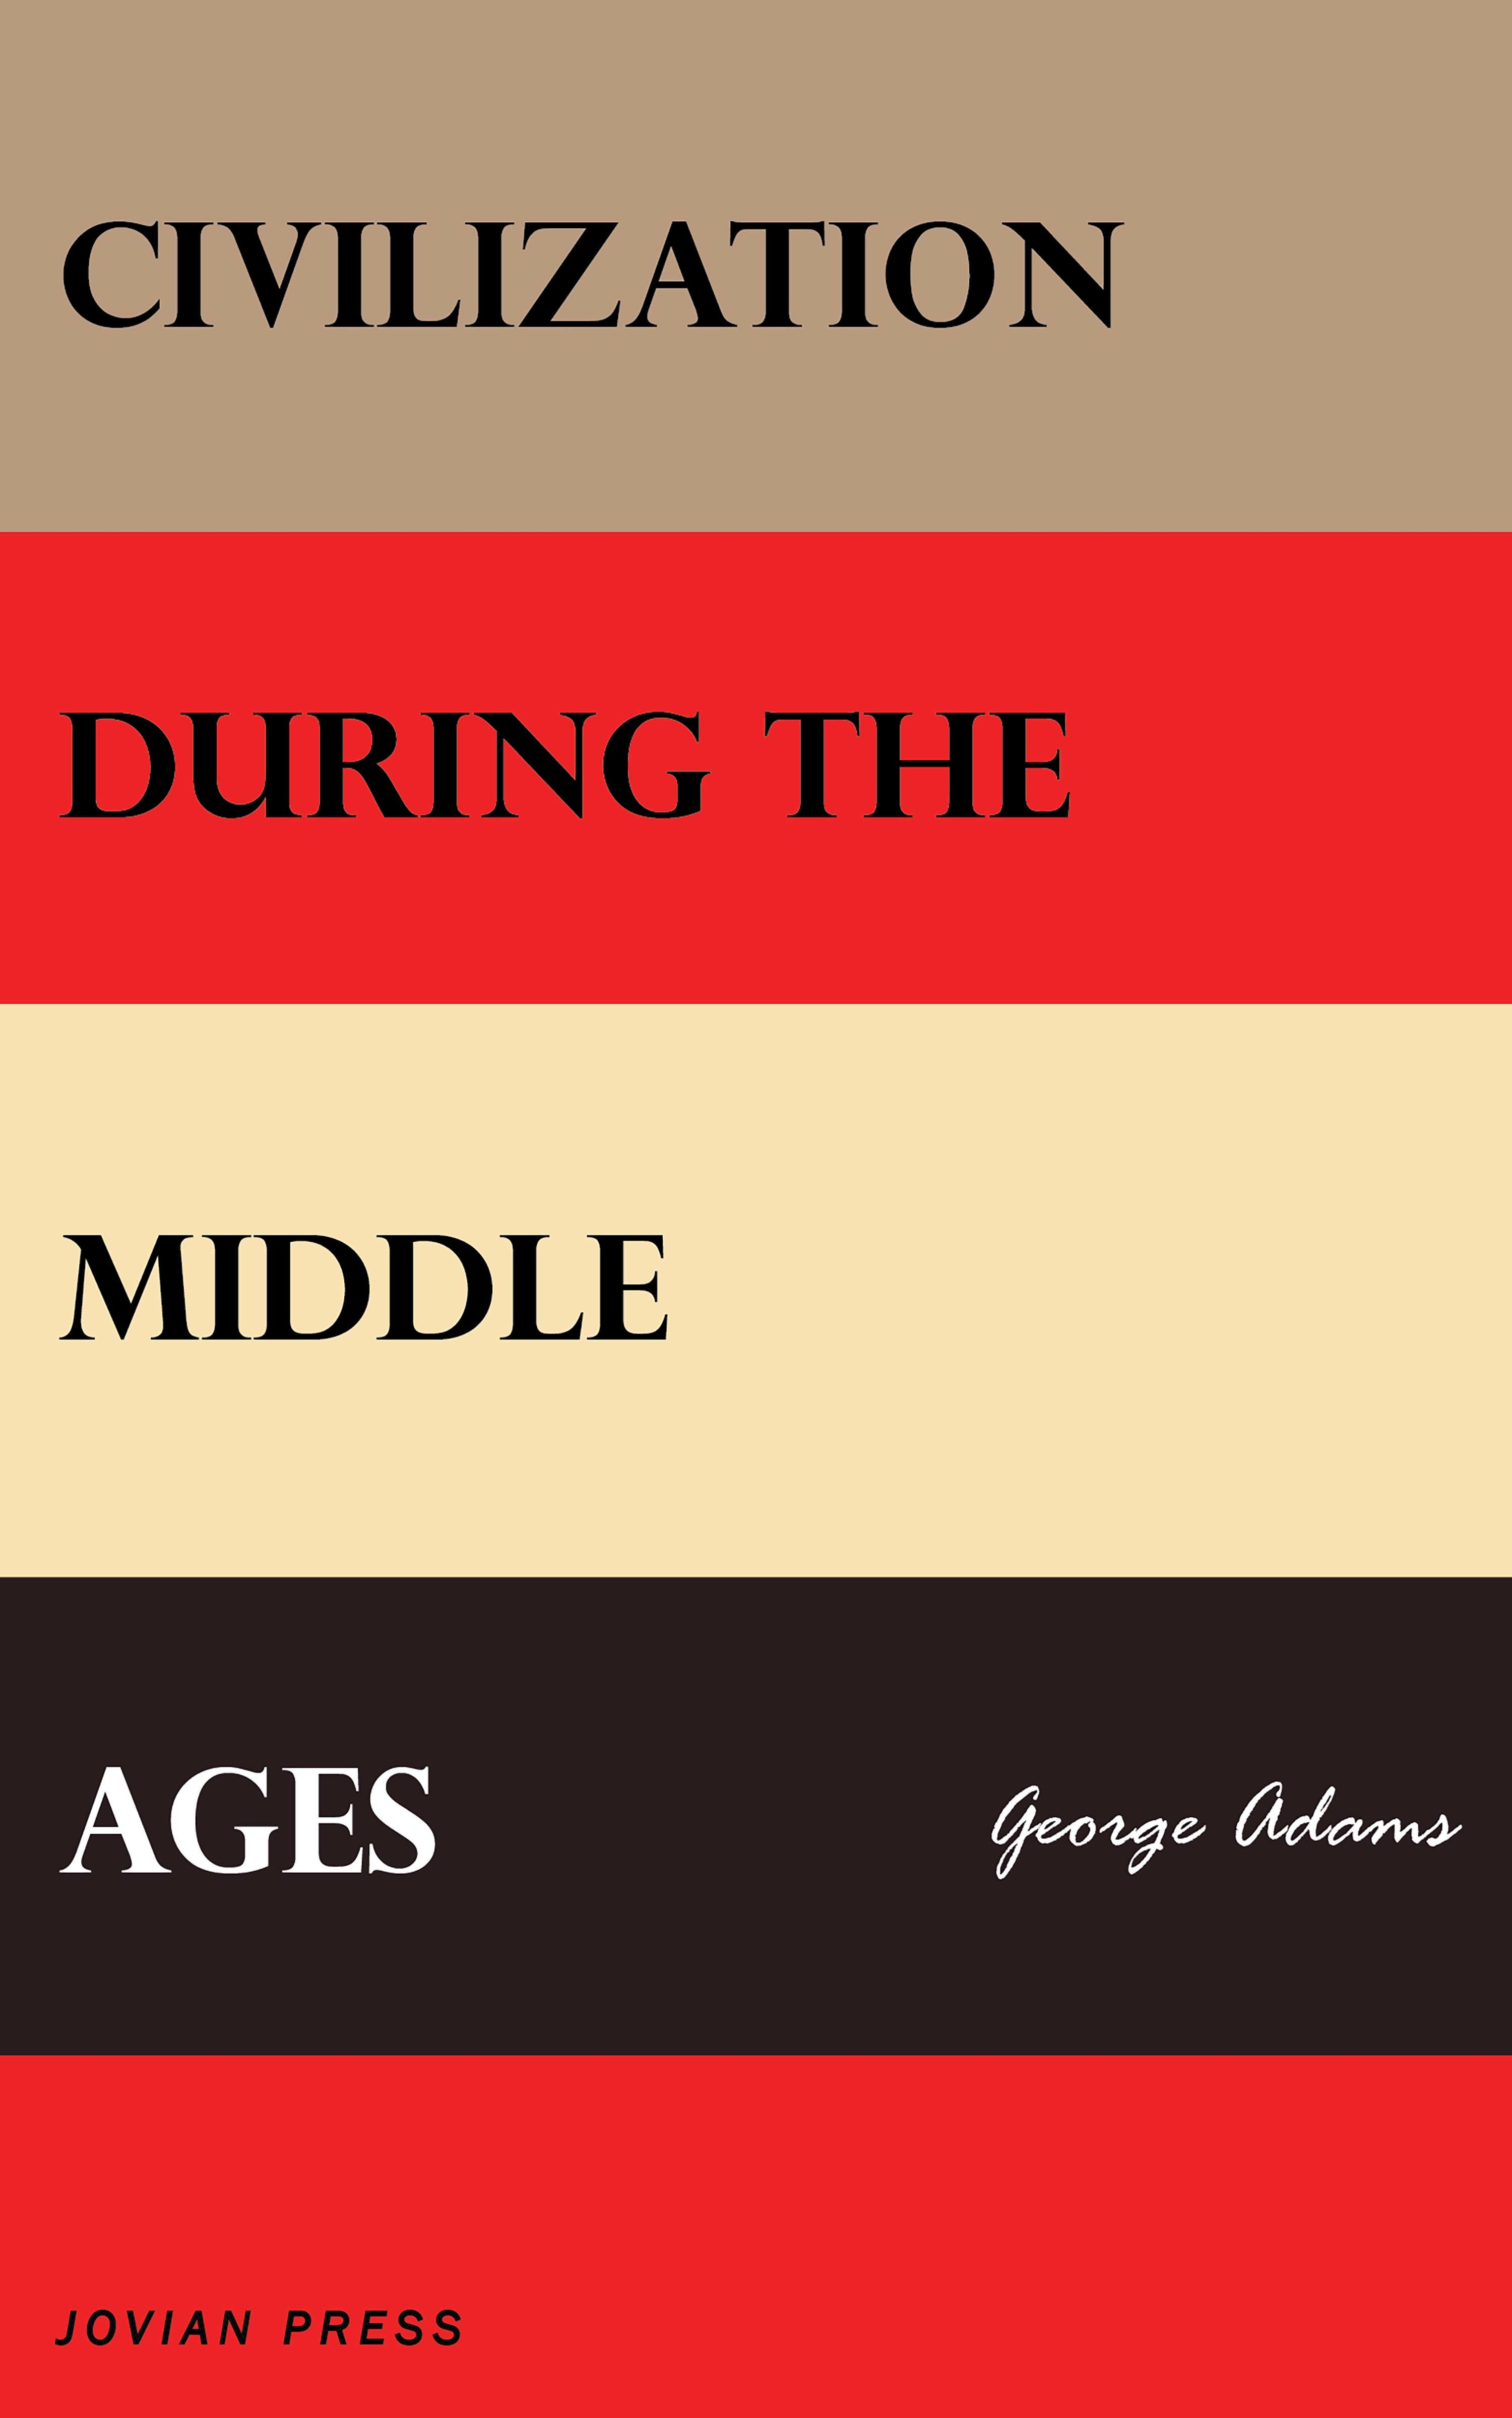 George Adams Civilization During the Middle Ages